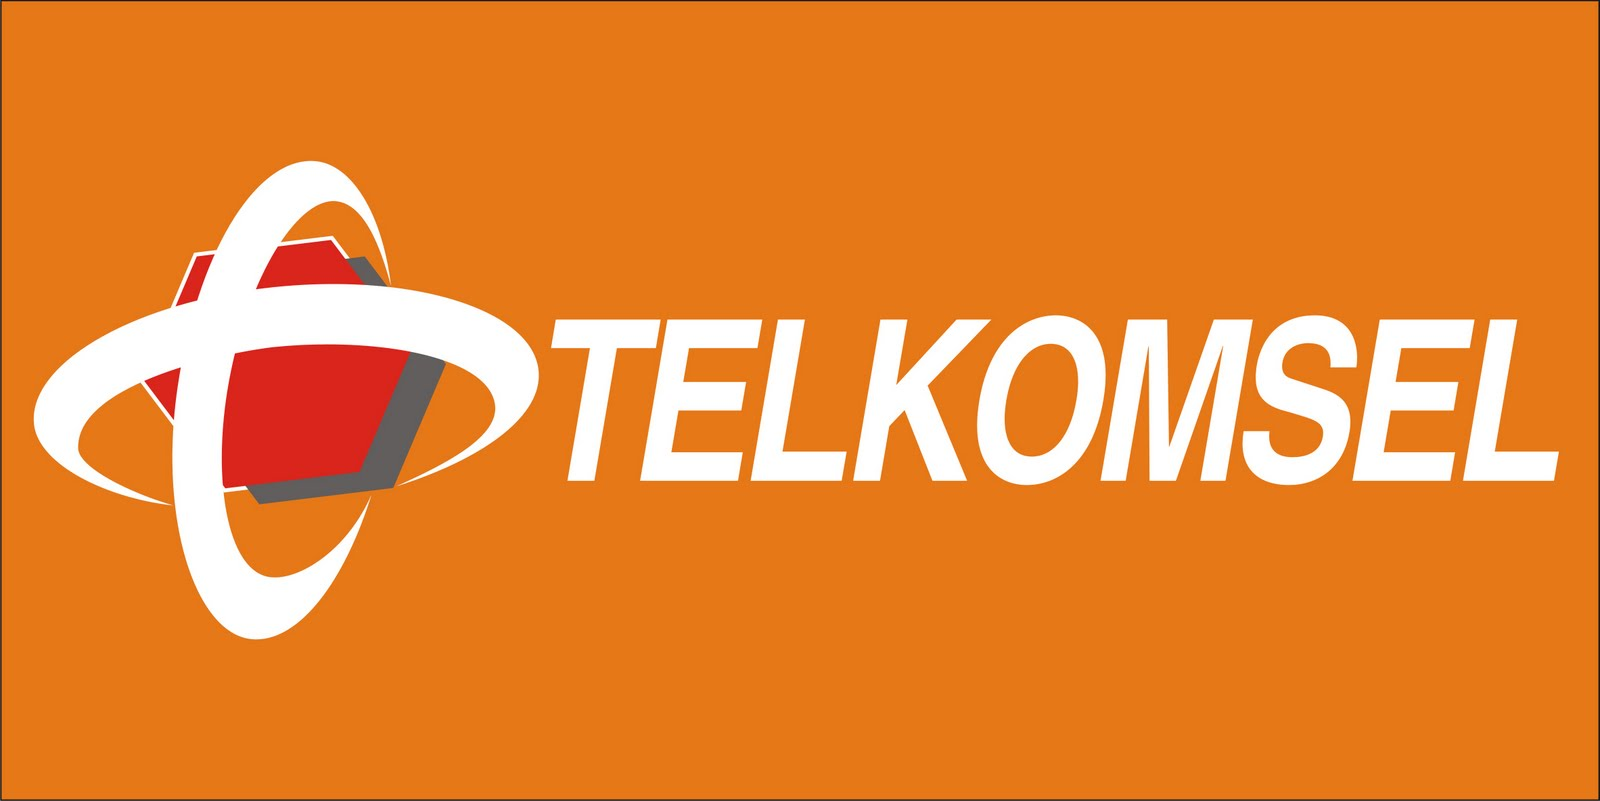 cell phone operators vector free download by  teaktok  1